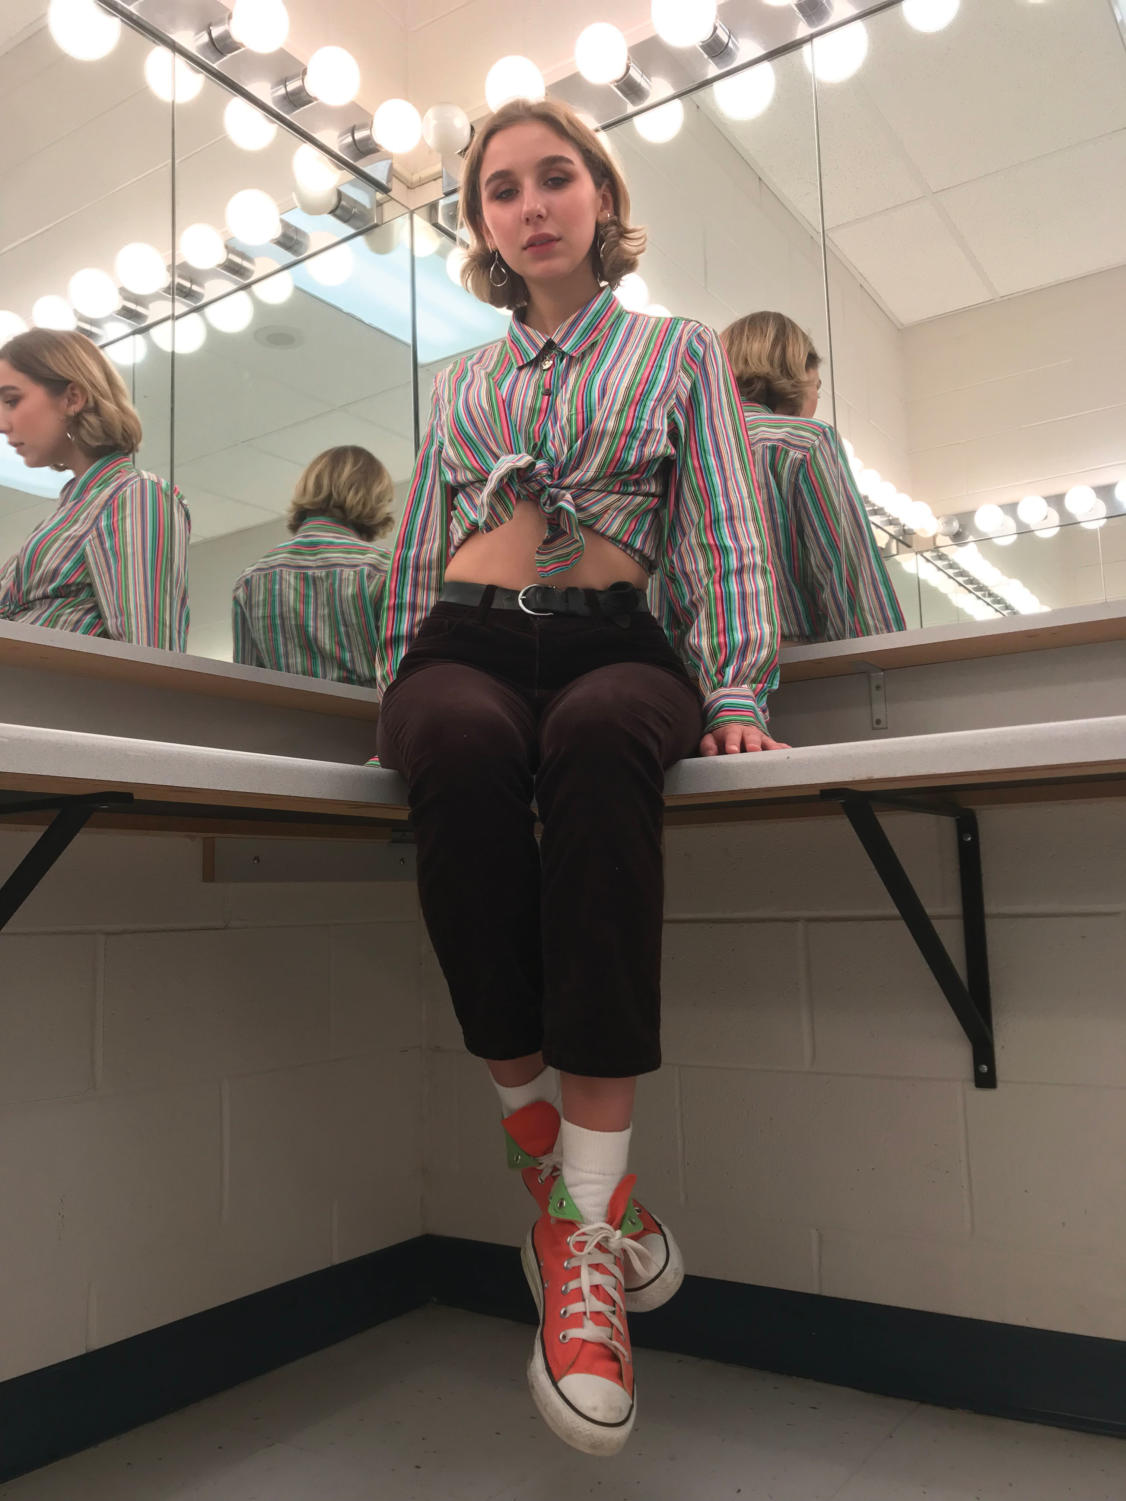 Jayne Cronin (12) poses for a photoshoot in her outfit.